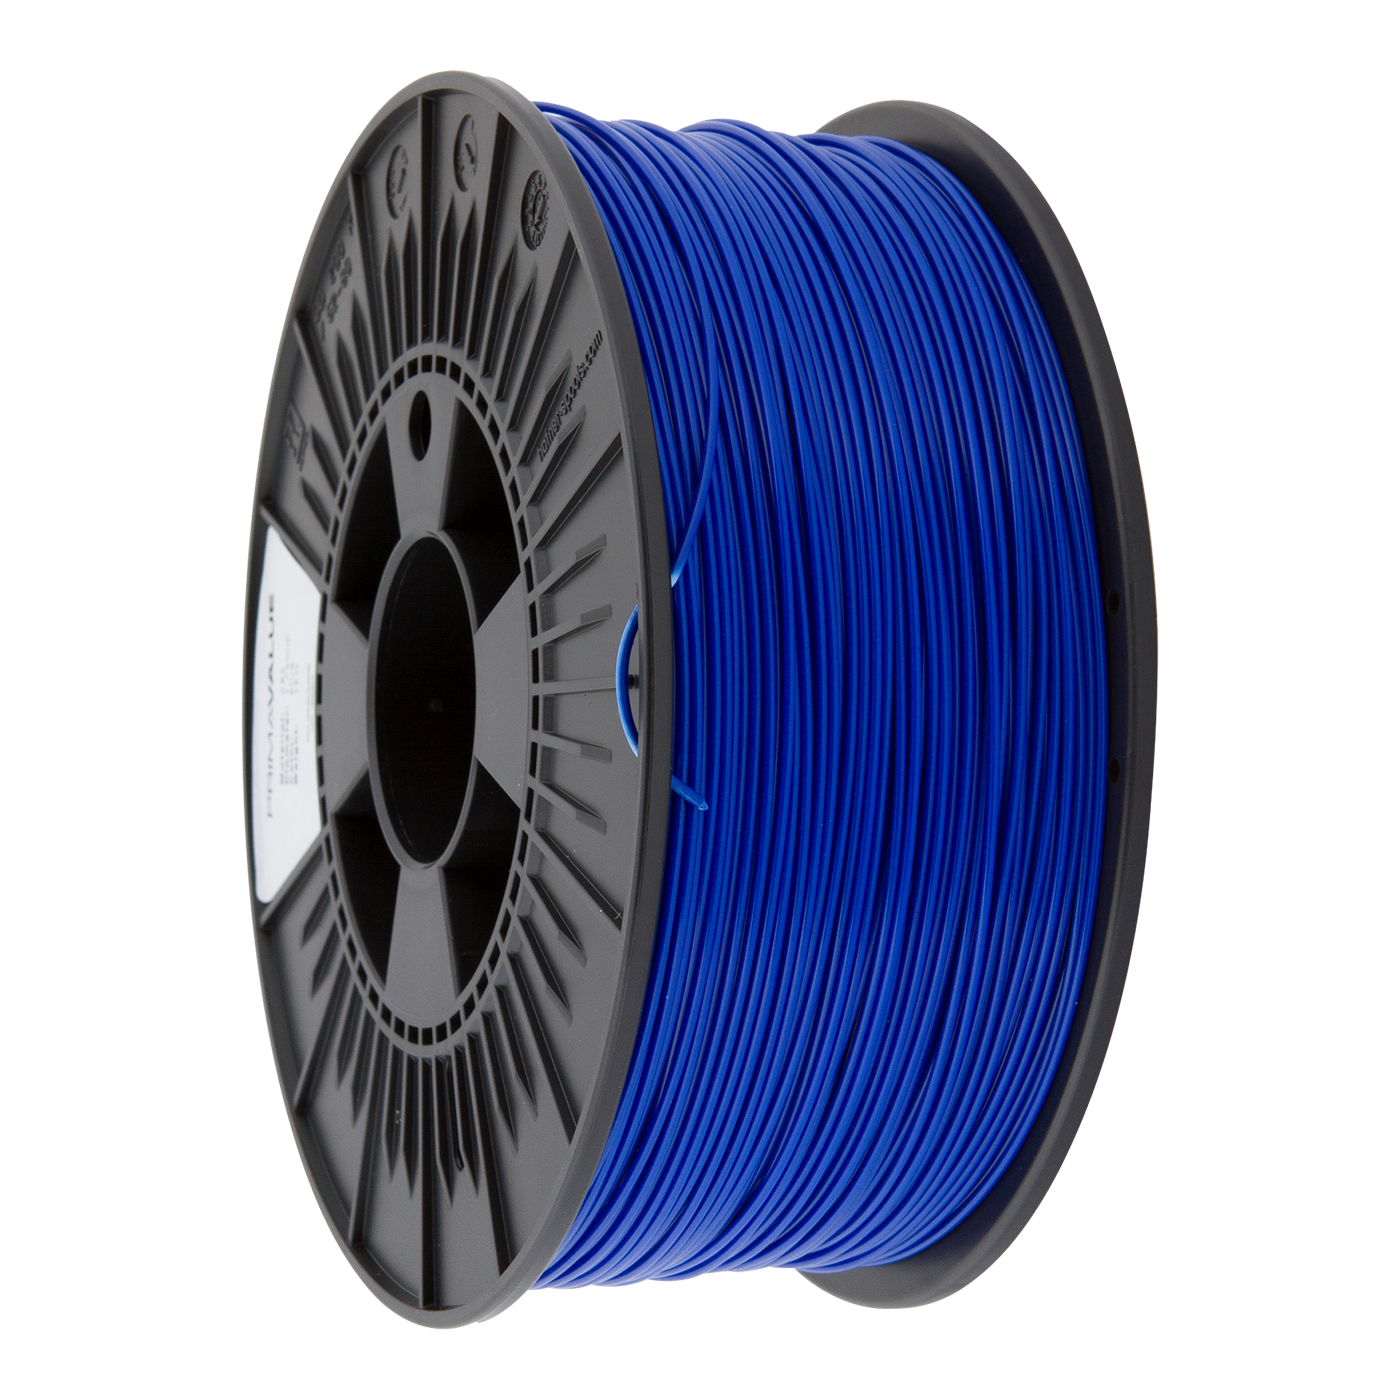 PrimaValue ABS Filament - 1.75mm - 1 kg spool - Blå